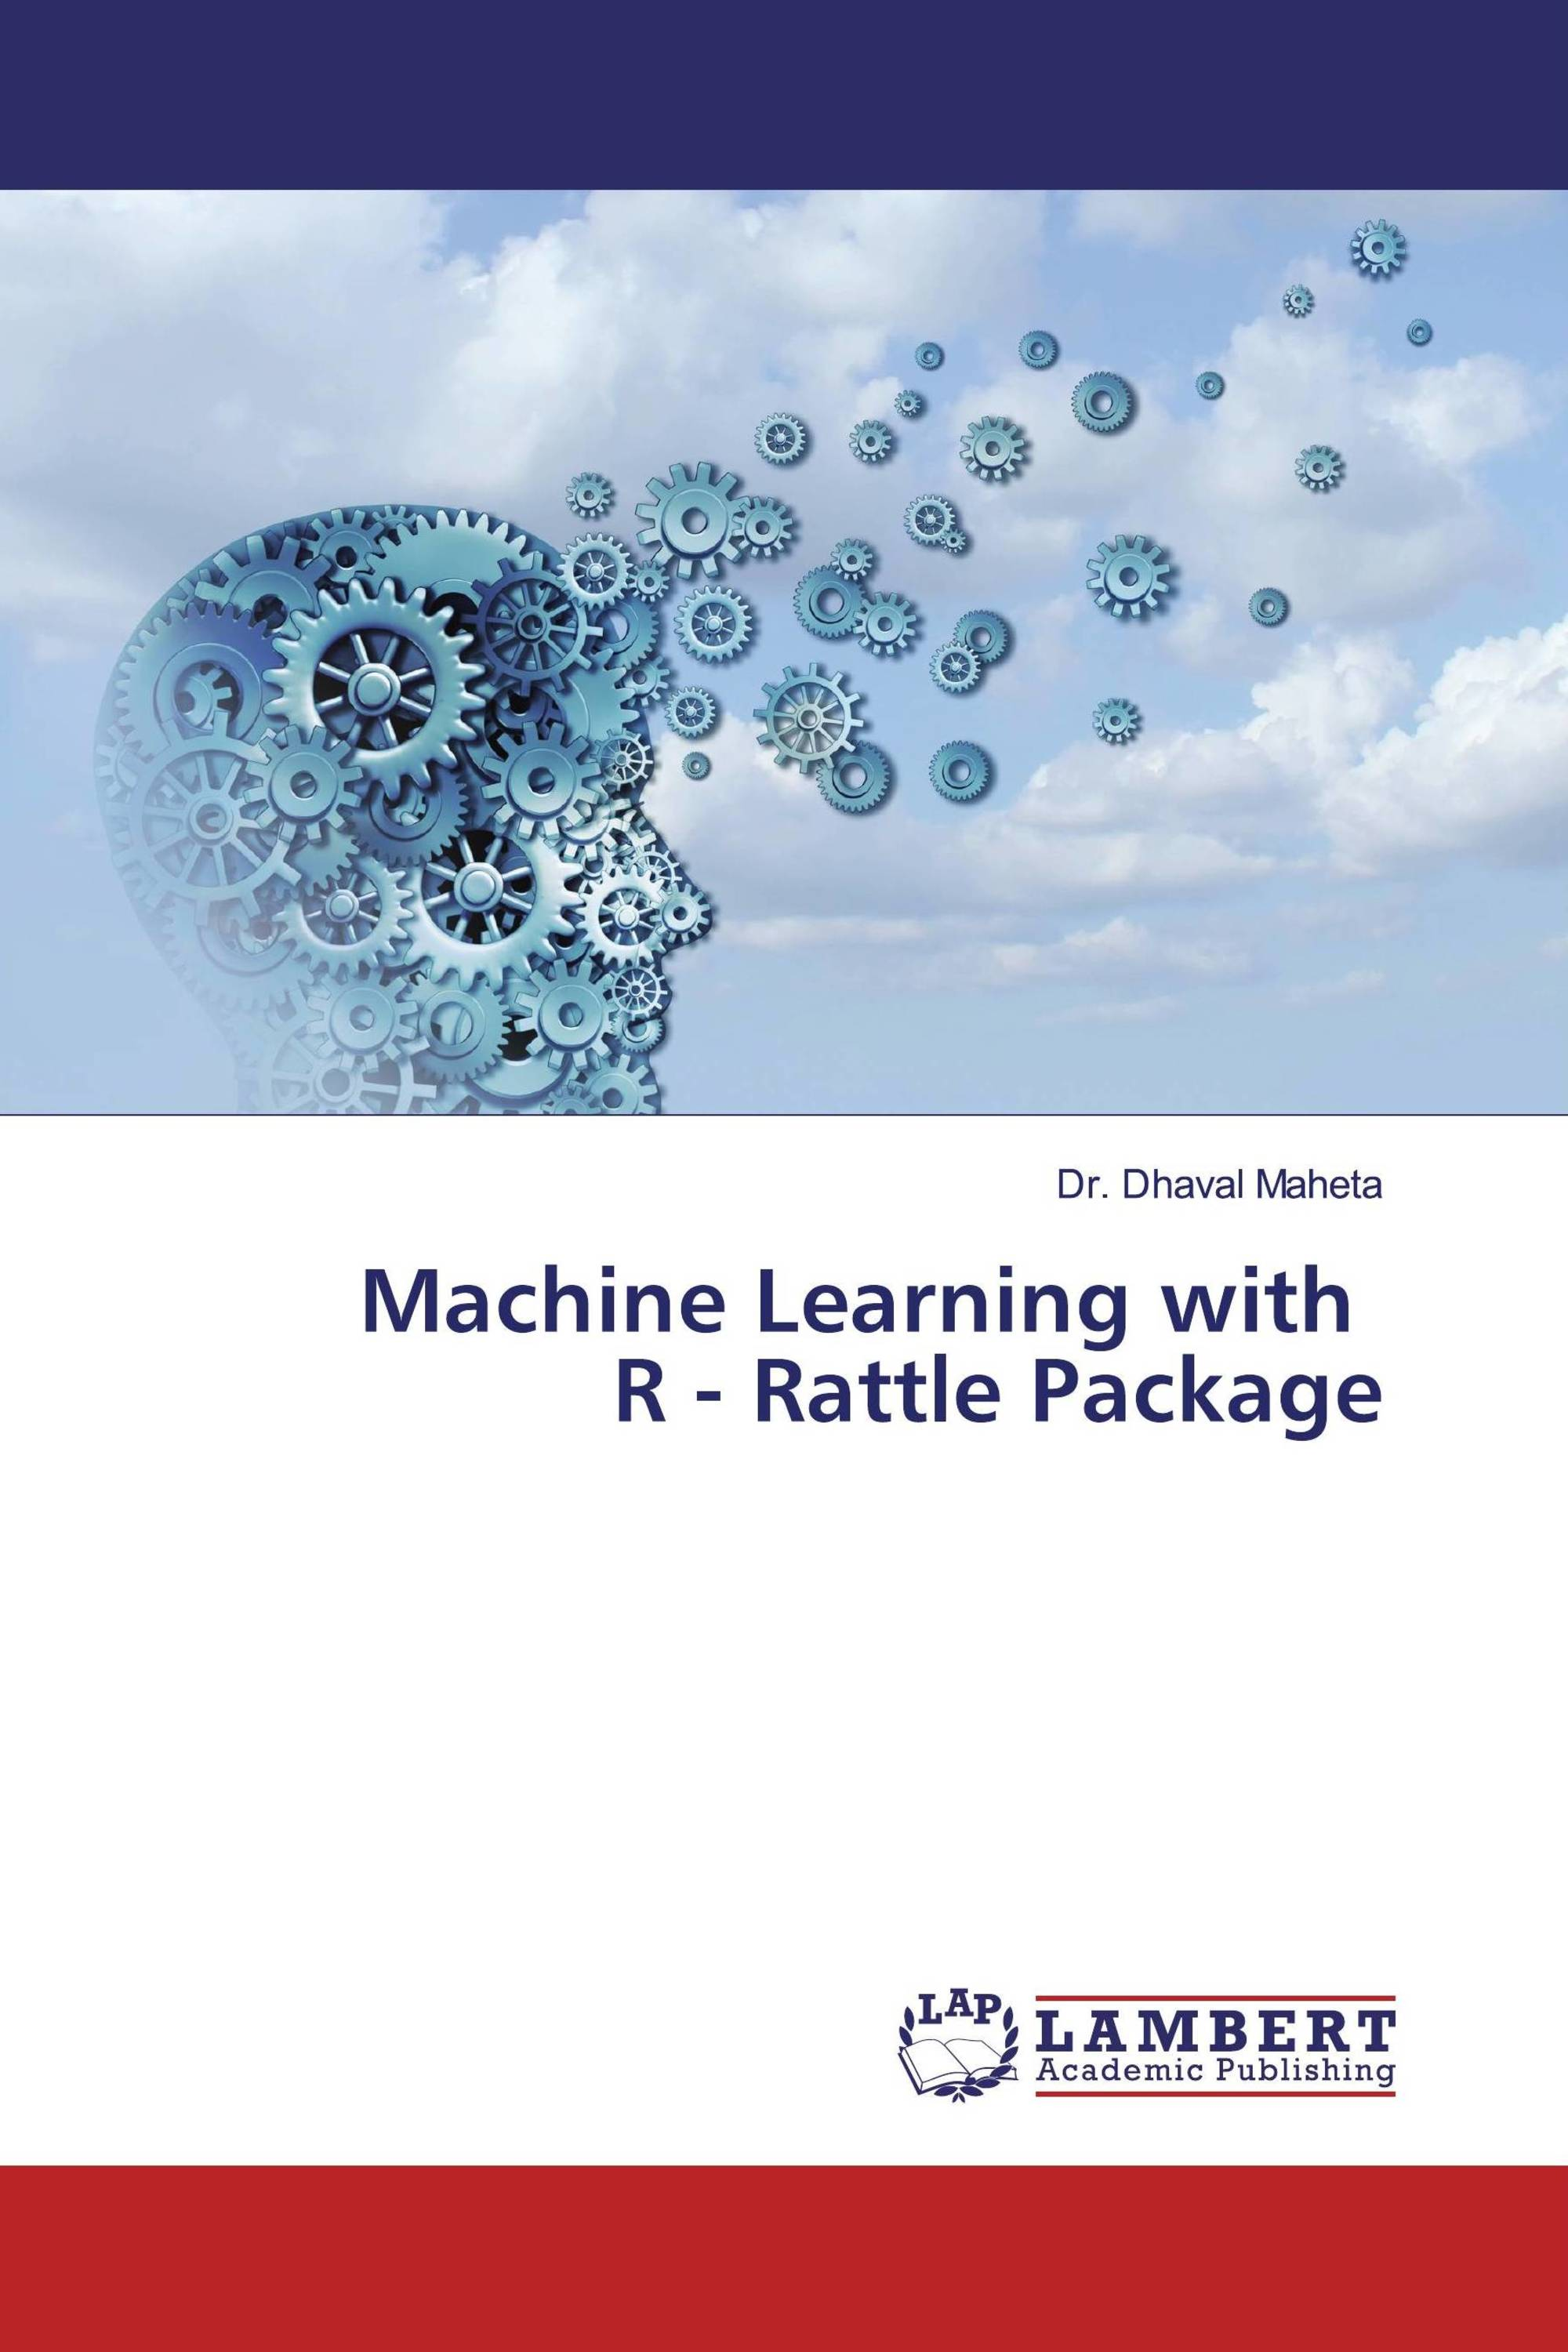 Machine Learning with R - Rattle Package